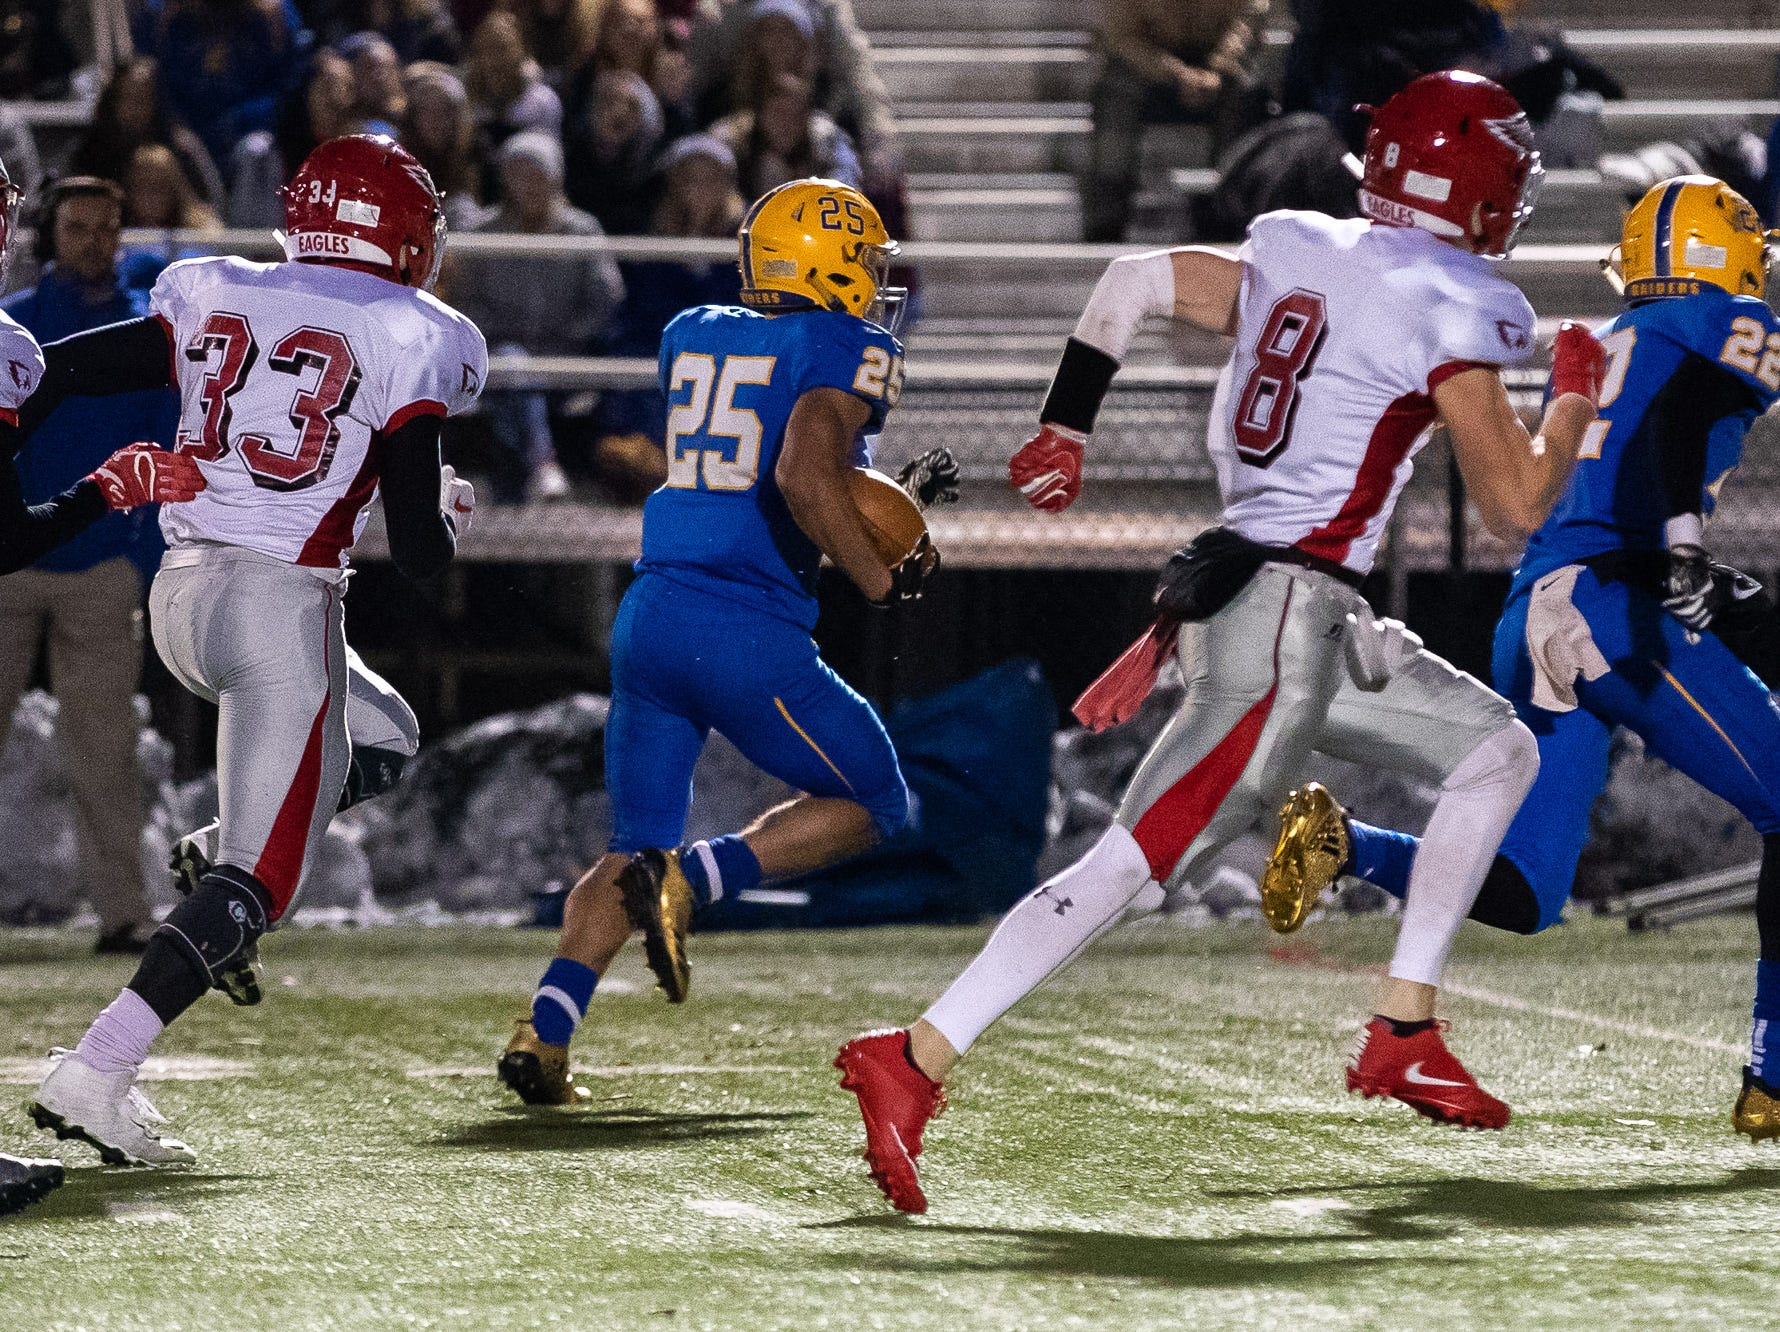 Middletown's Jose Lopez (25) rushes down the field for a touchdown during the first half of the District 3 Class 3A championship game between Bermudian Springs and Middletown, Saturday, Nov. 17, 2018, at Cedar Crest High School. Middletown leads Bermudian Springs 28-6 at the half.